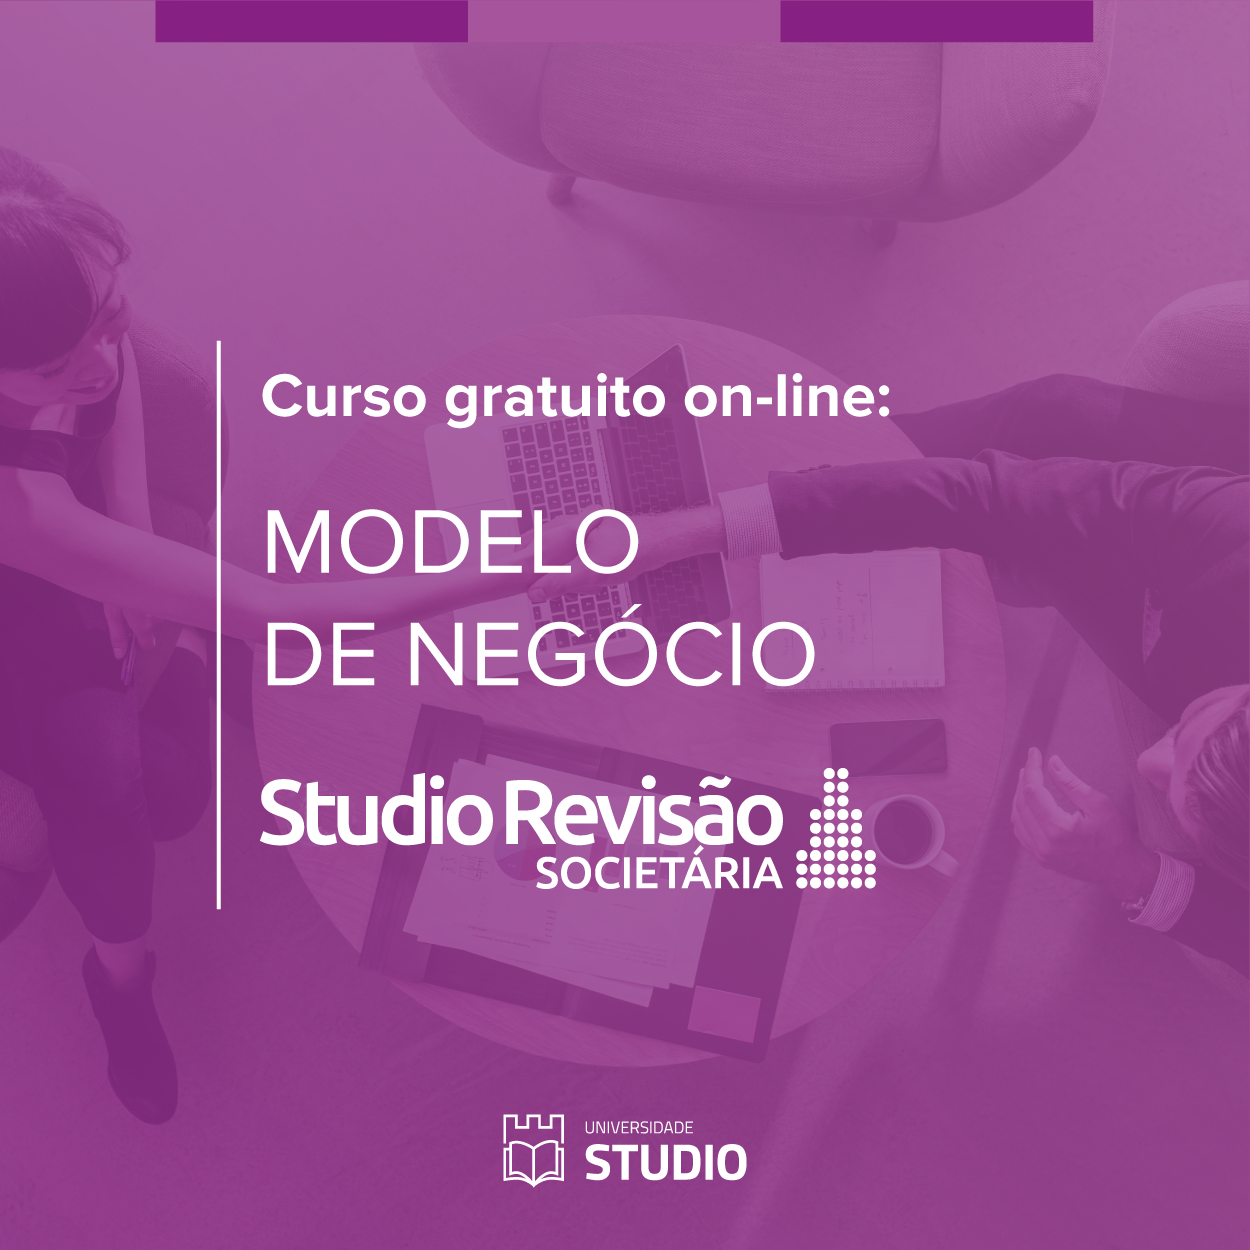 Universidade curso revisaosocietaria capa